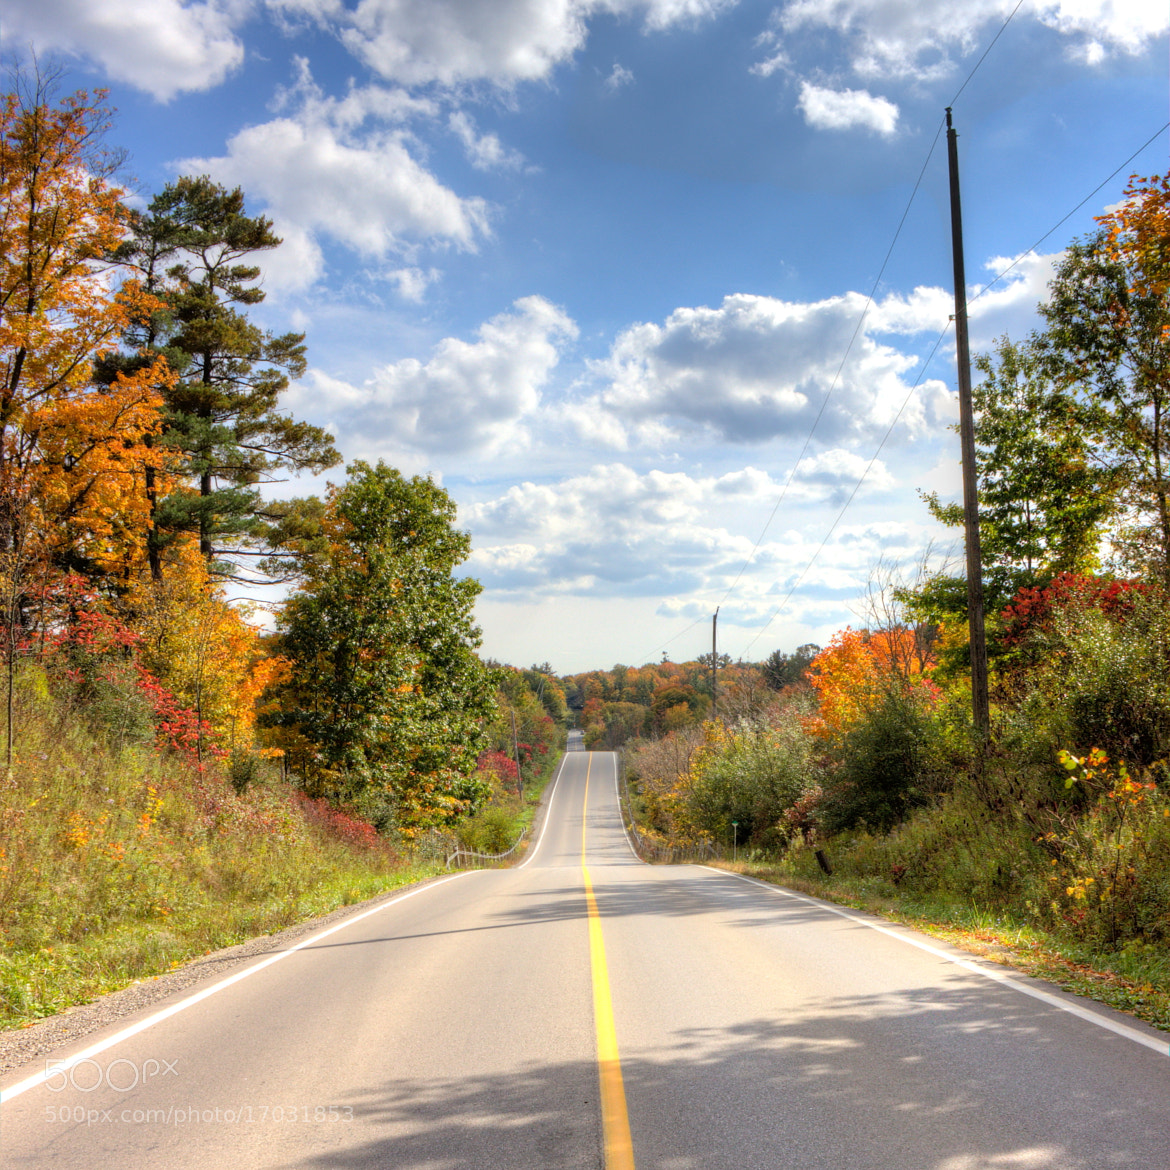 Photograph Autumn road to nowhere by John Velocci on 500px